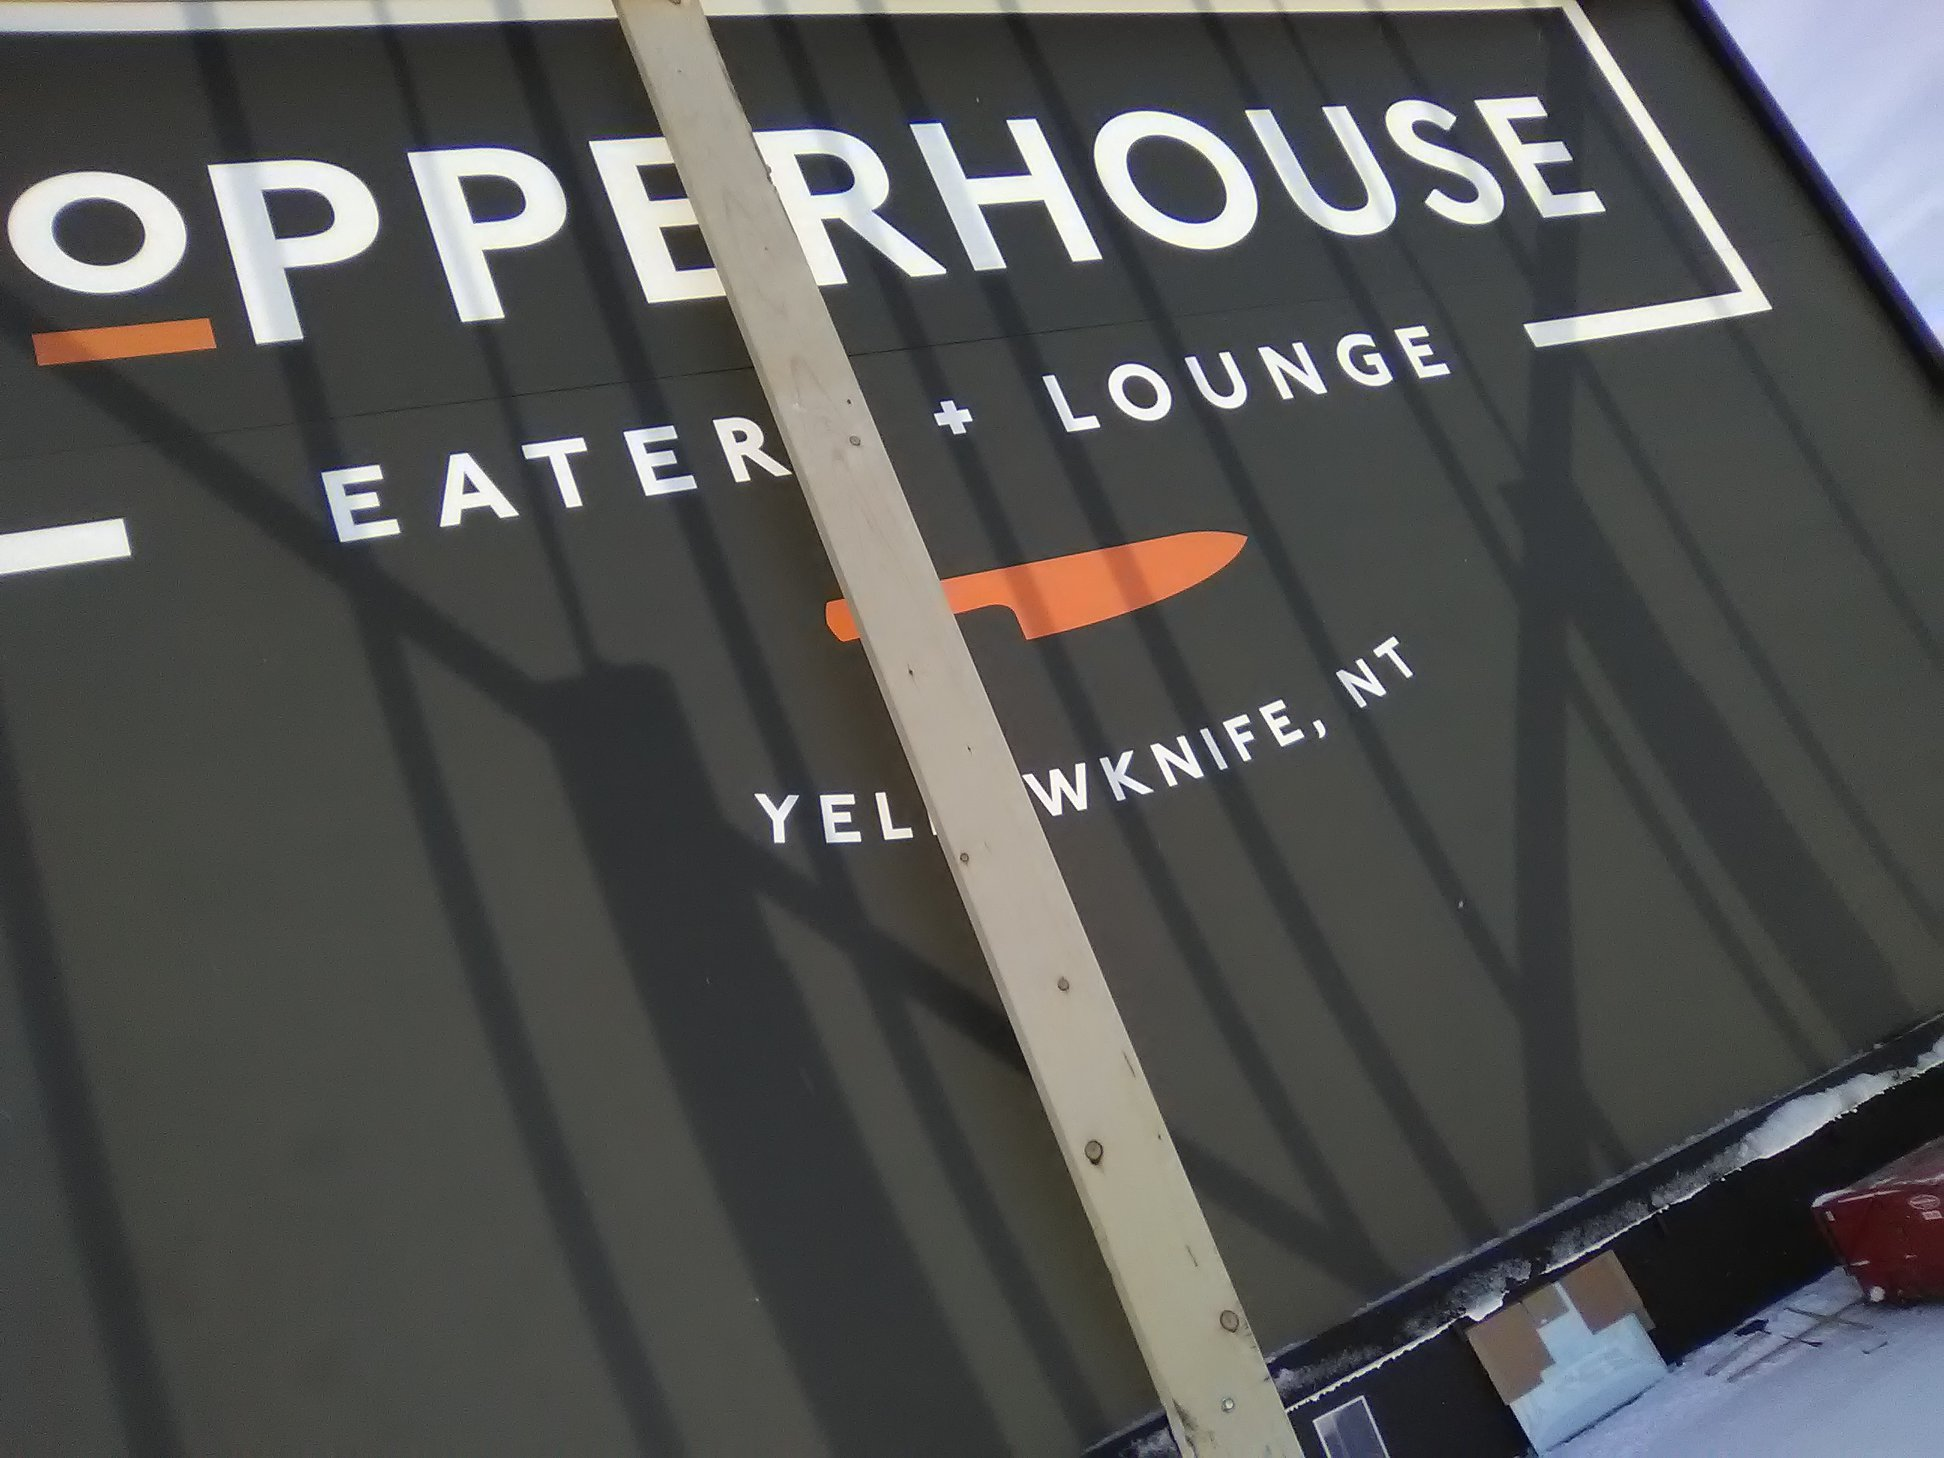 Exterior Plyon sign for Copperhouse Eatery & Lounge.